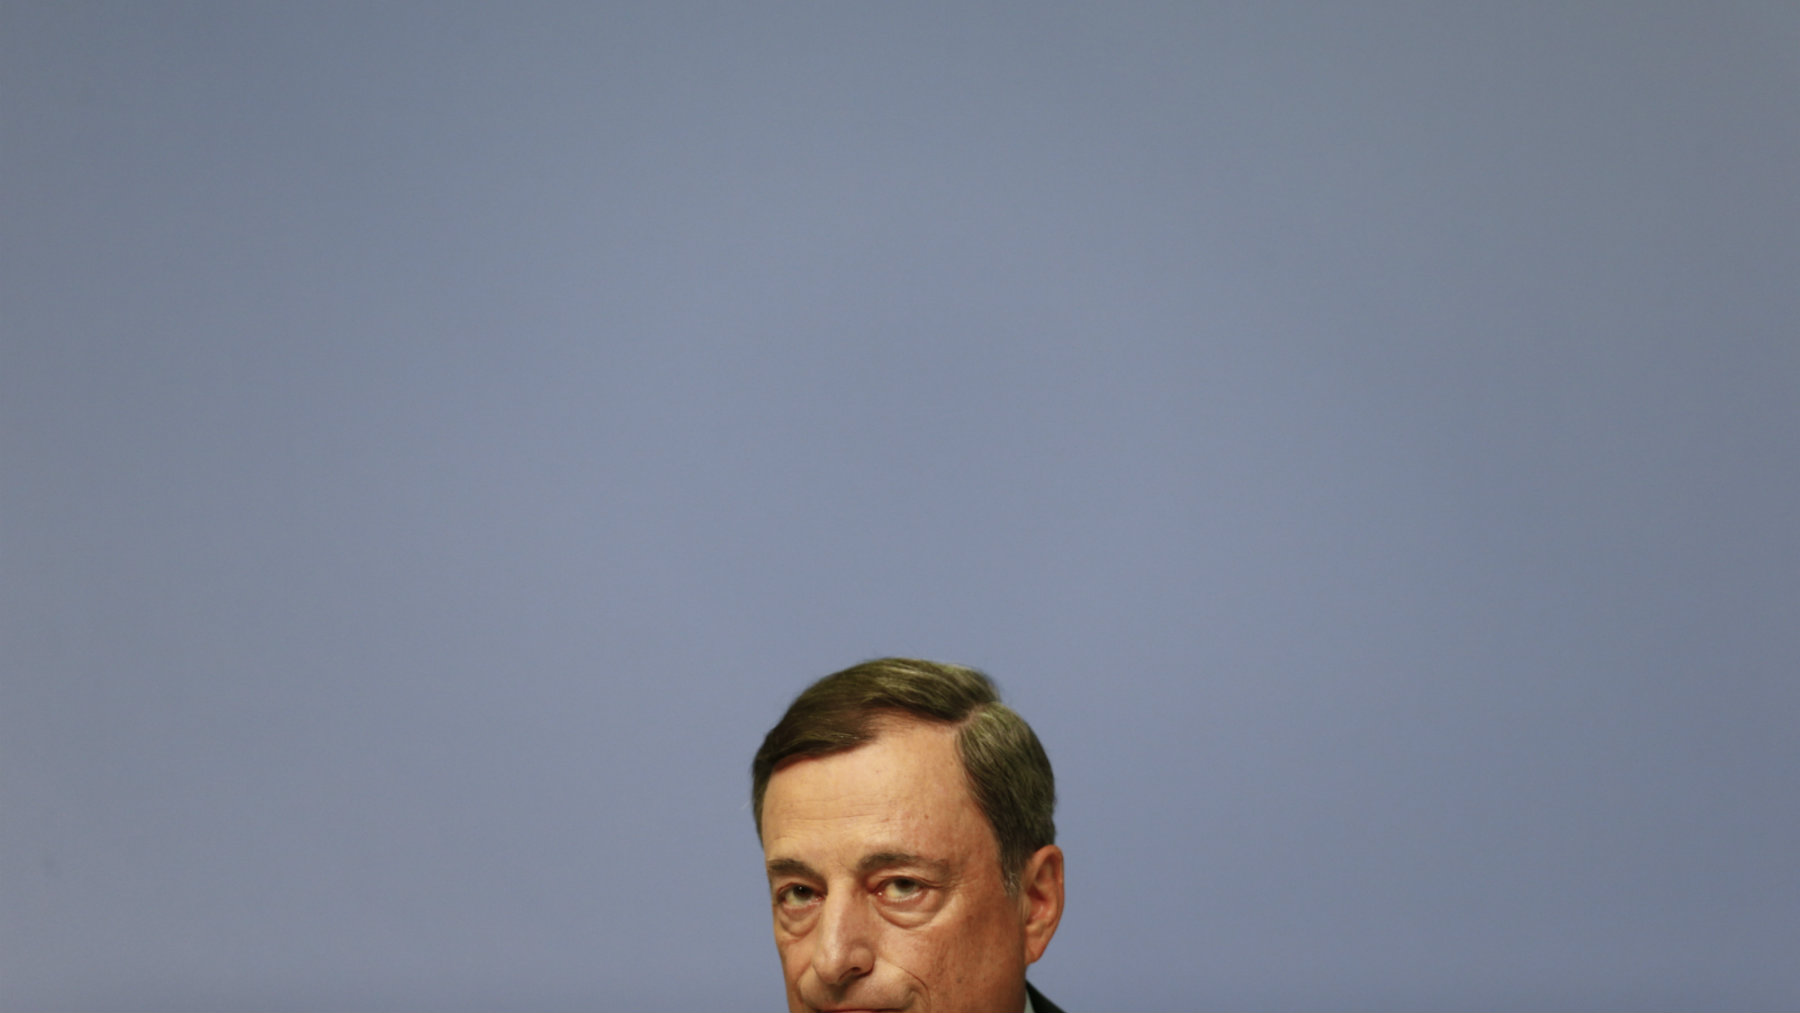 European Central Bank president Mario Draghi addresses a news conference at the ECB headquarters in Frankfurt, Germany, September 3, 2015. The European Central Bank said on Thursday it was holding its 60 billion euro a month asset purchase limit unchanged but raised the amount of any one issue it could buy to 33 percent from 25 percent. REUTERS/Ralph Orlowski